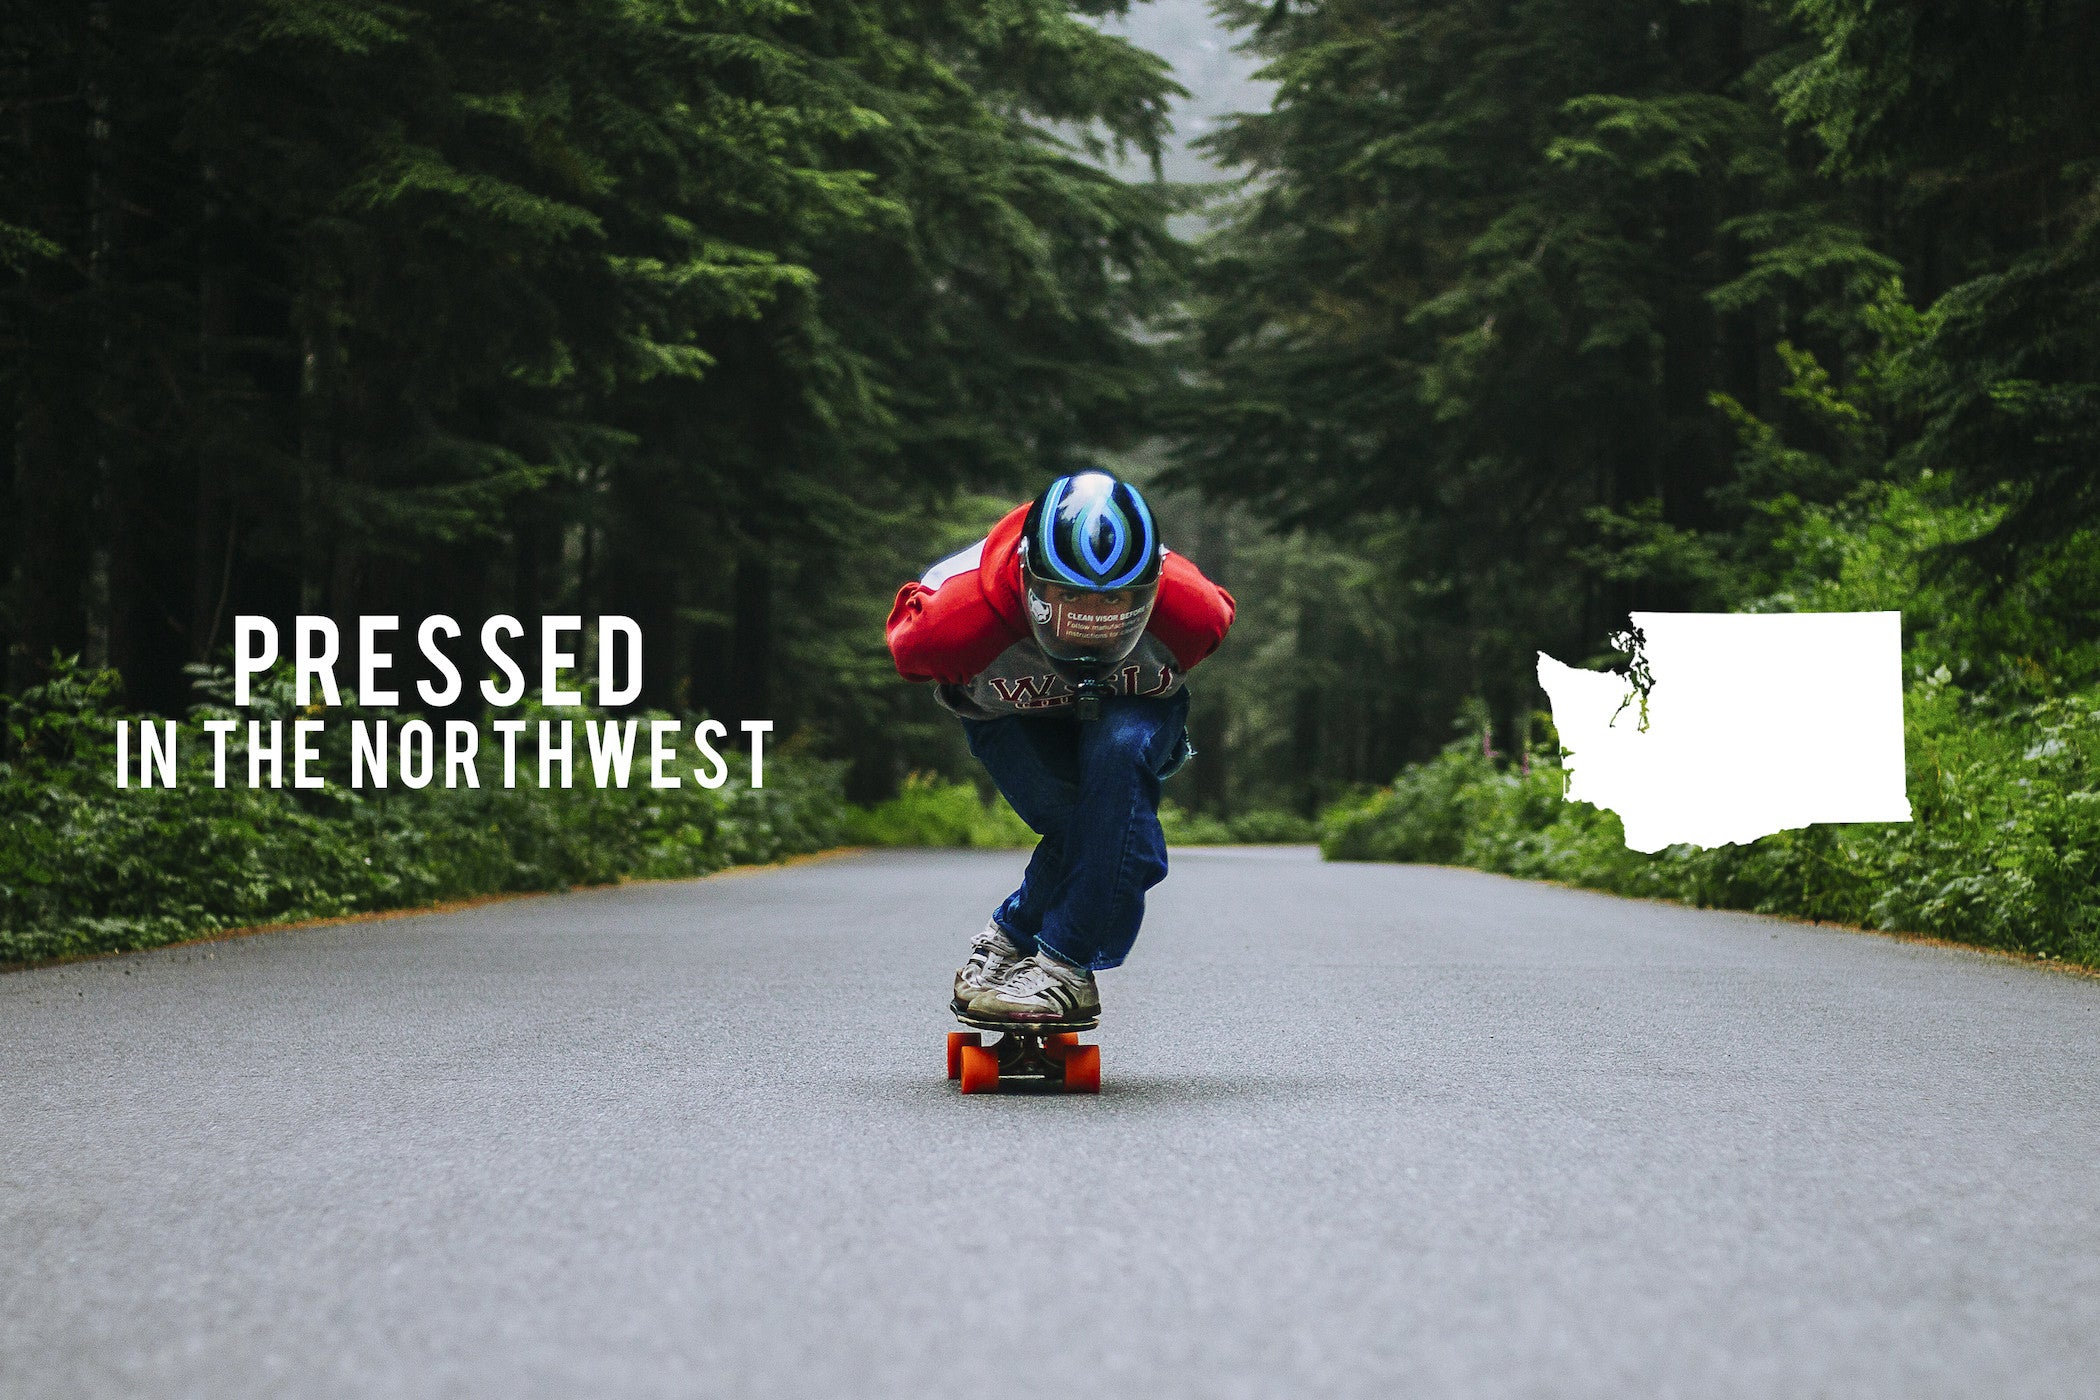 Subsonic Skateboards have been made in the Pacific Northwest since 1999